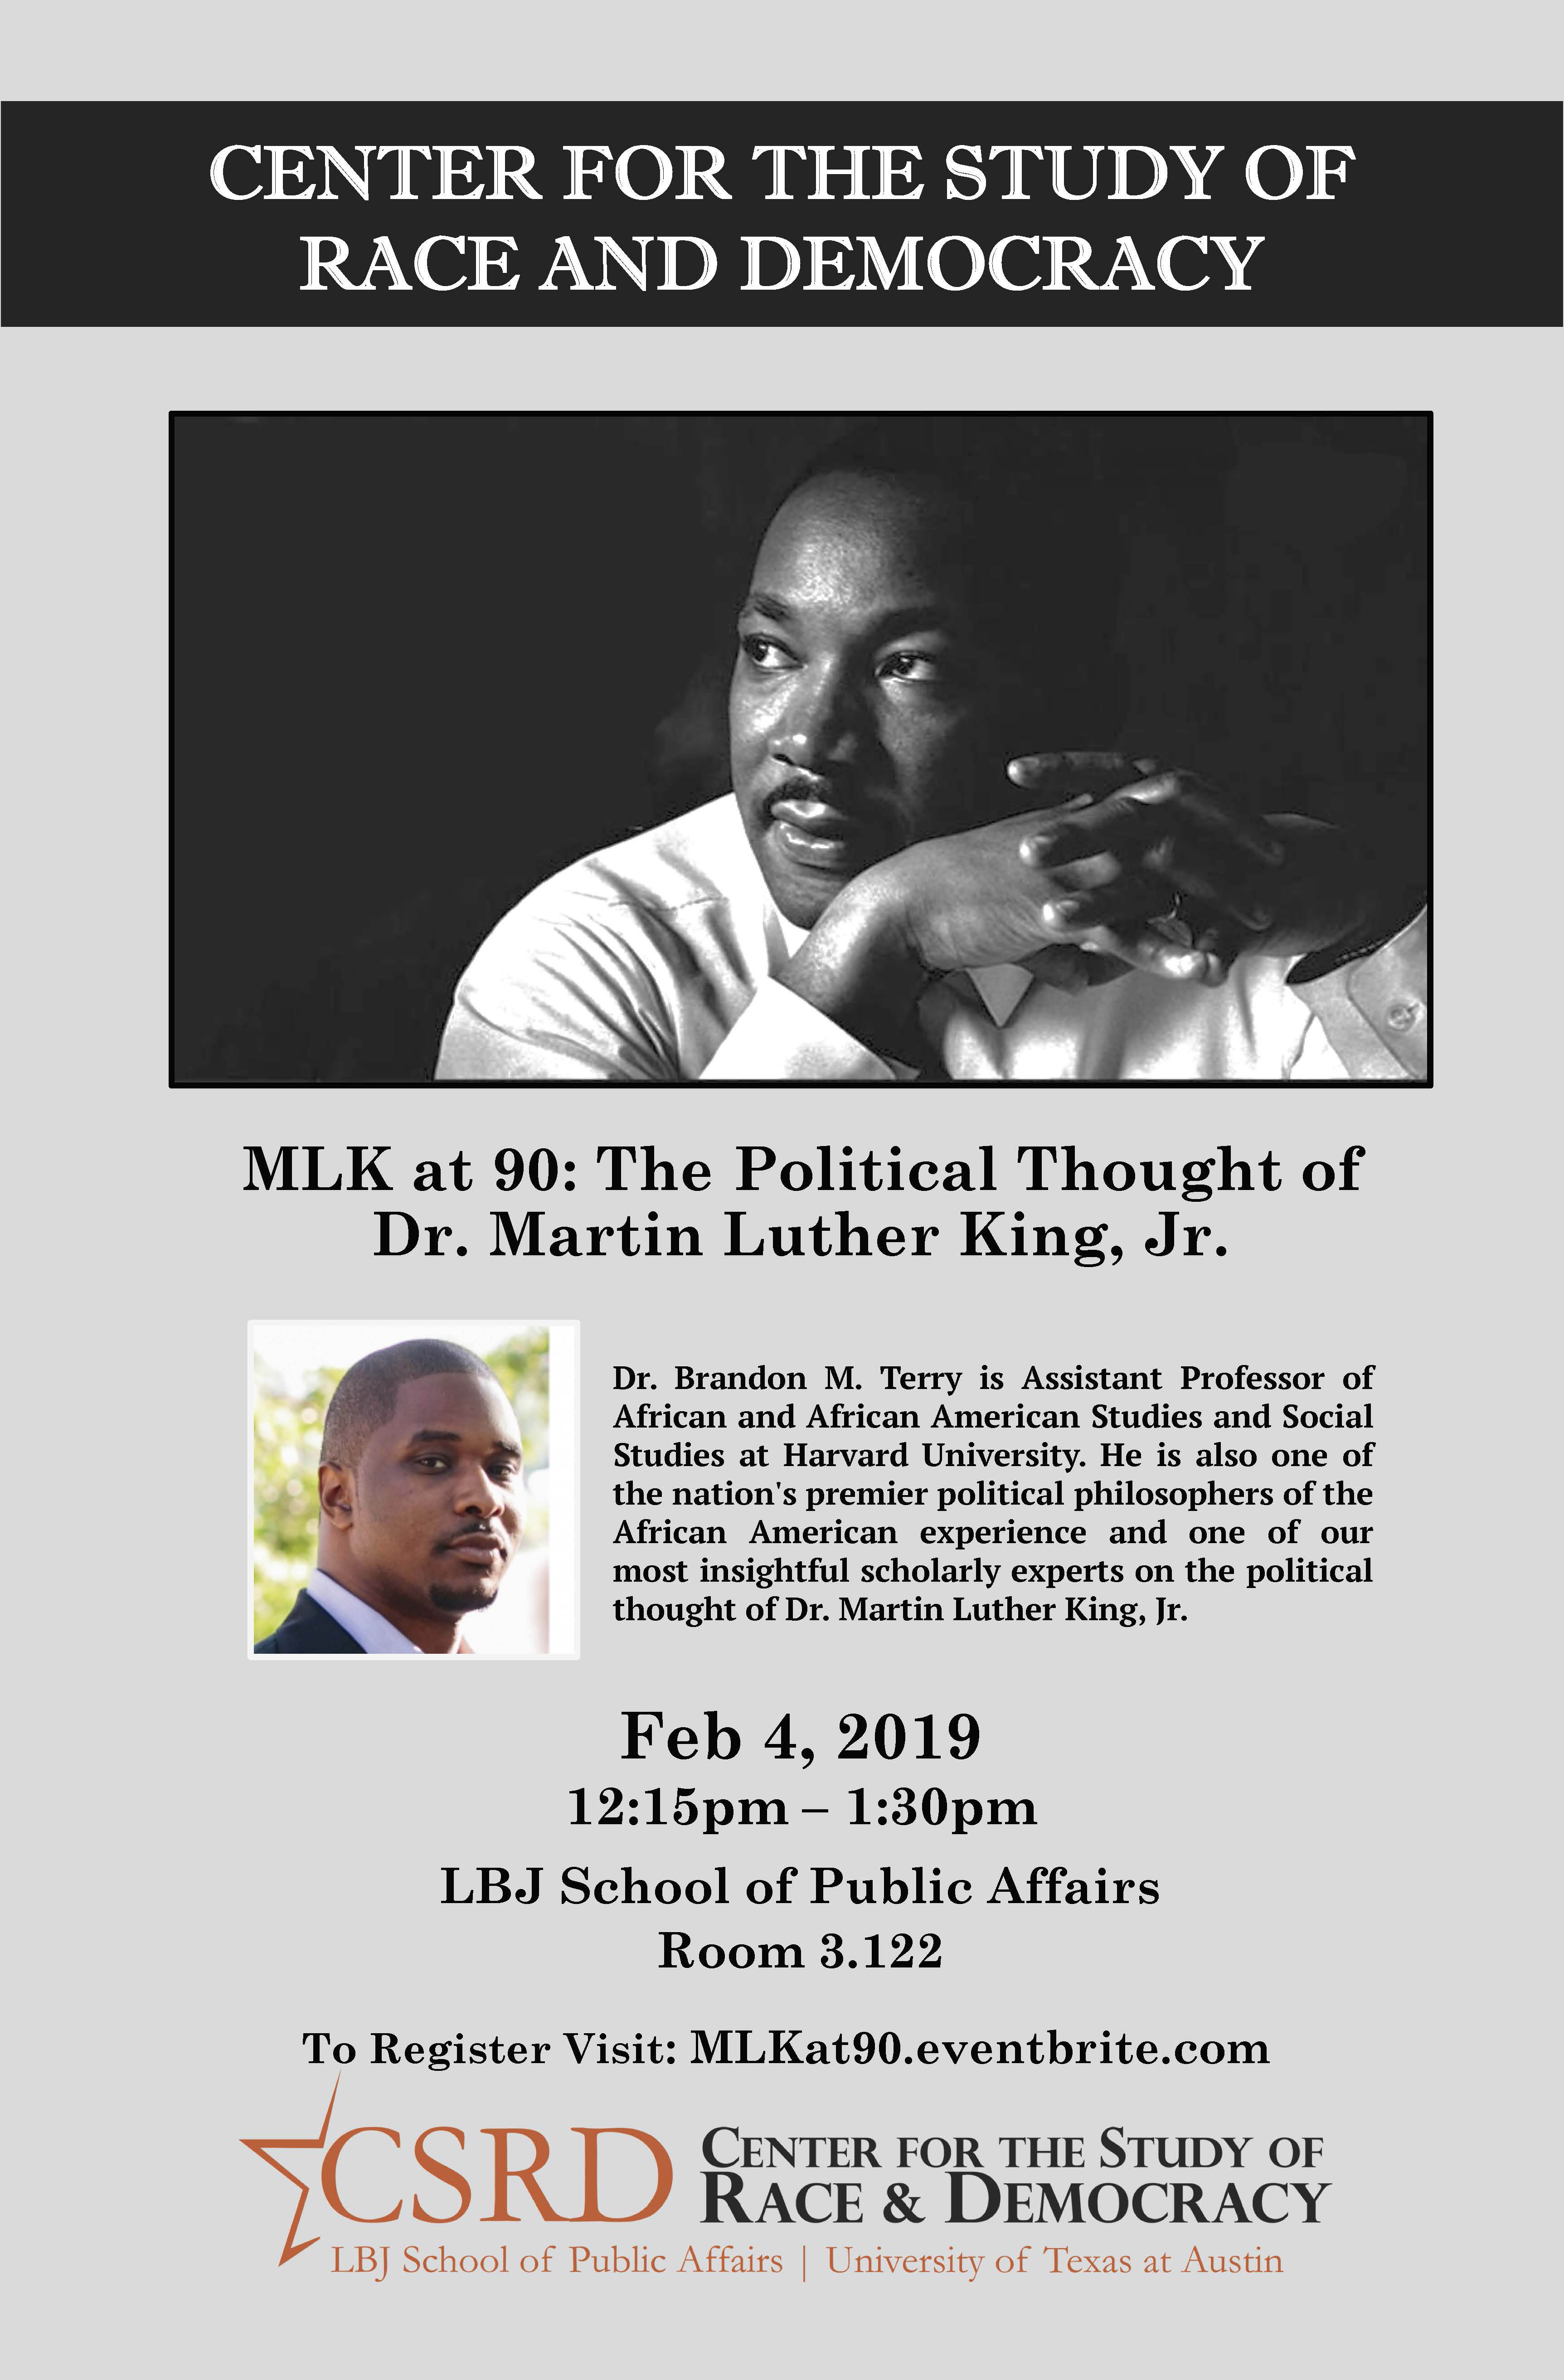 Poster for CSRD event: MLK at 90: The Political Thought of Dr. Martin Luther King Jr.